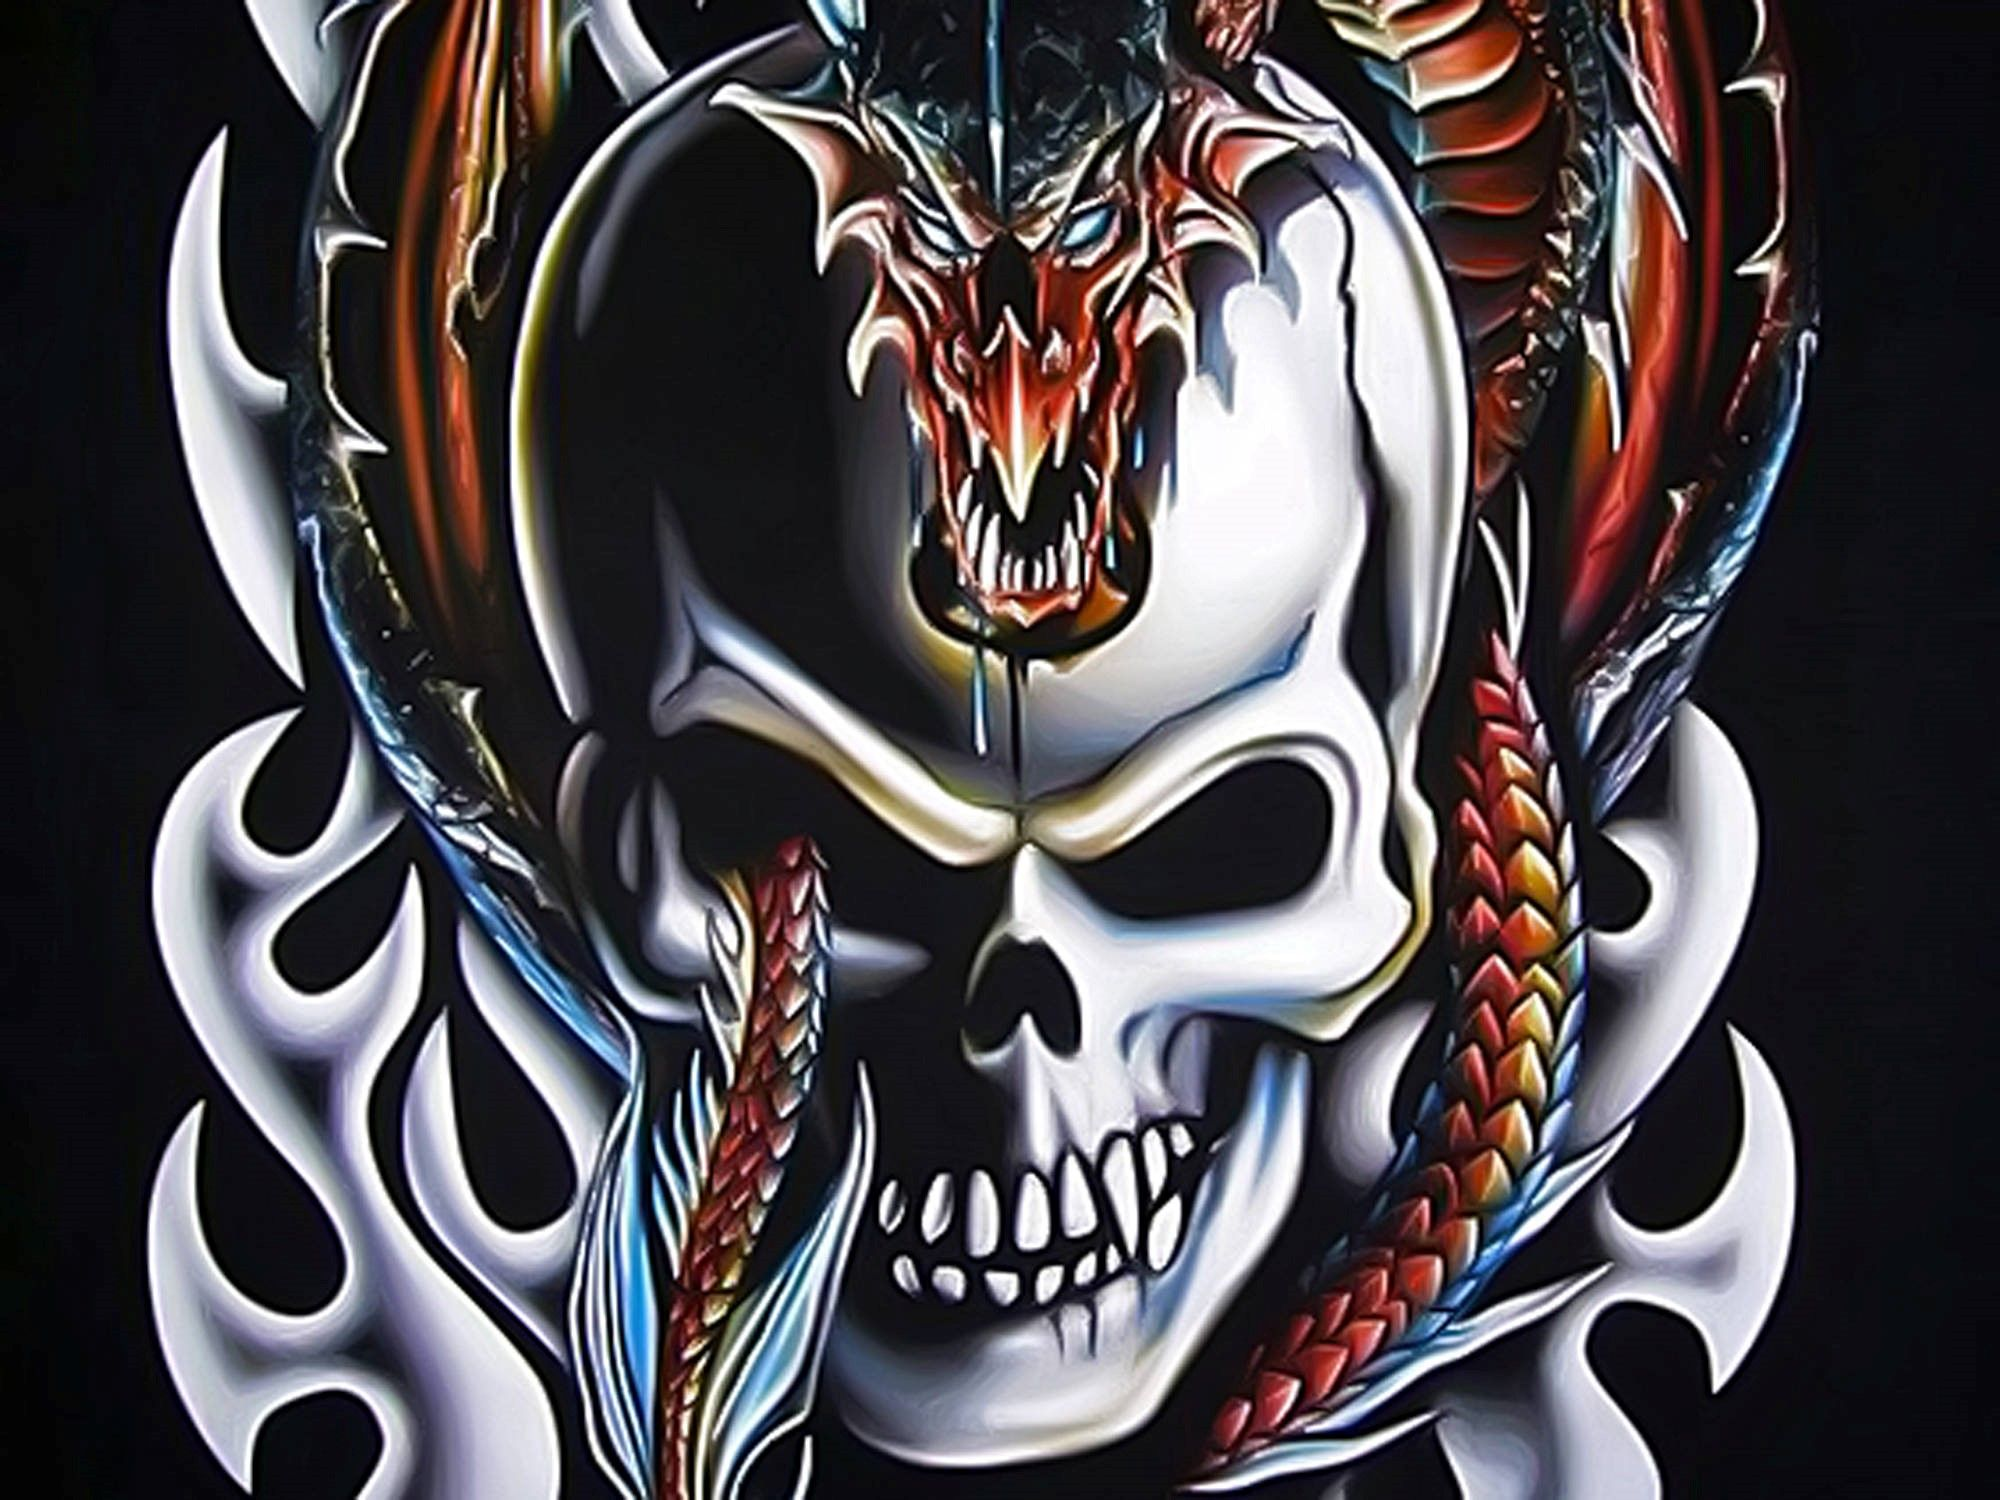 Dragon Skull Wallpaper In 2020 Skull Wallpaper Dragon Artwork Skull Artwork